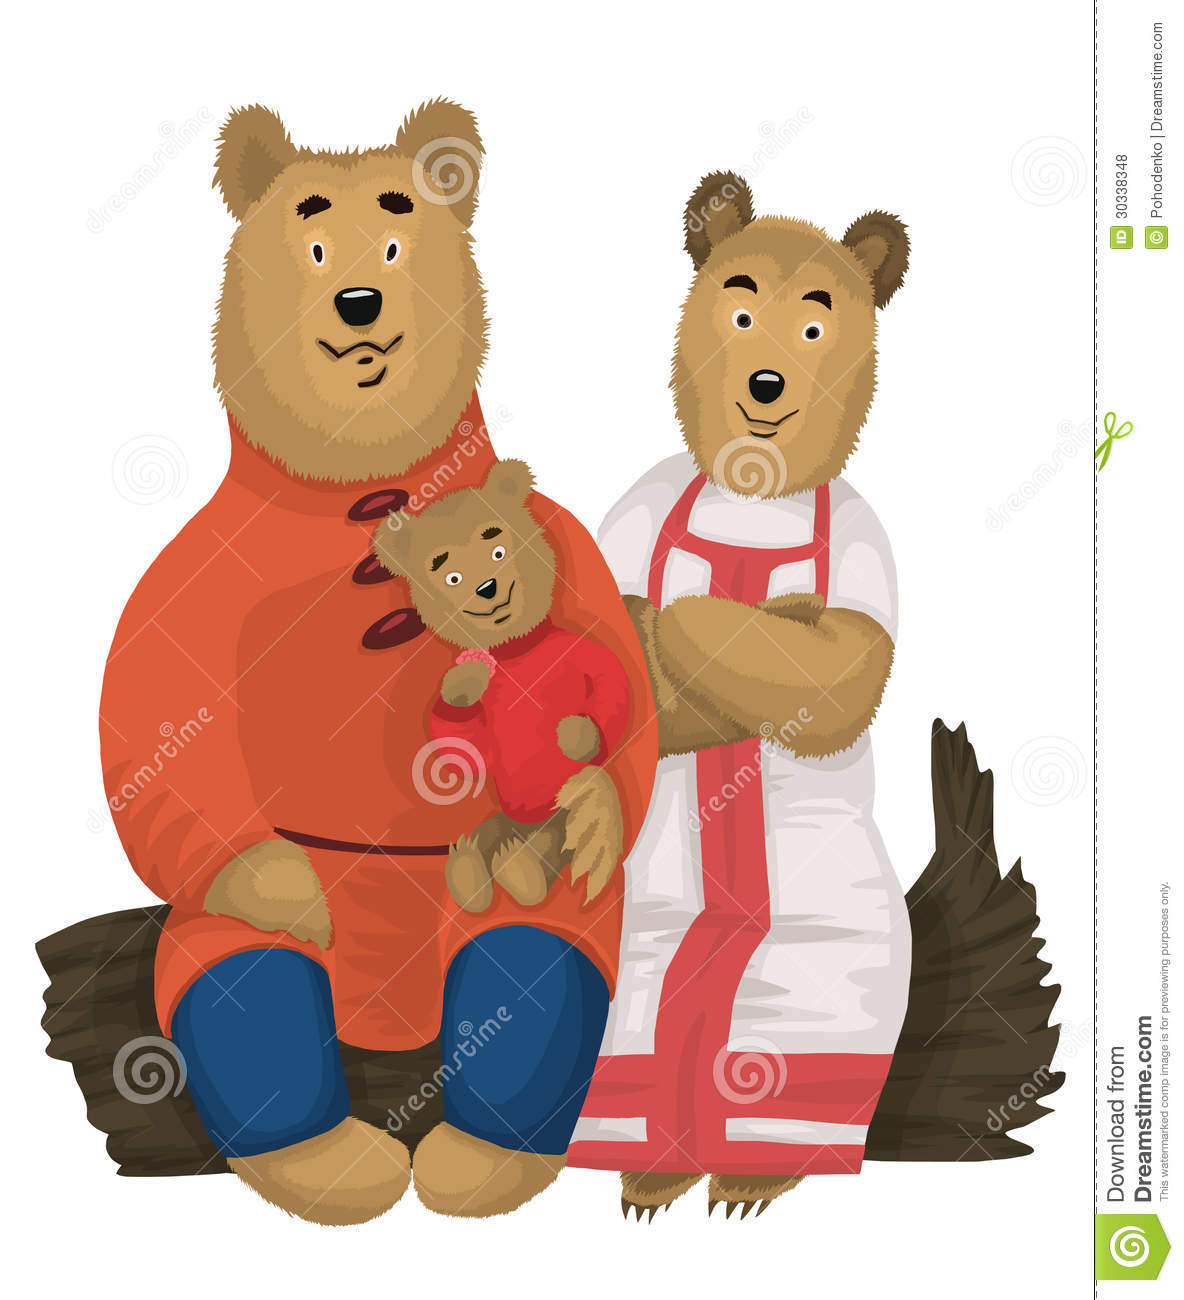 Bears Family Character Cartoon Style Illustration Stock ...